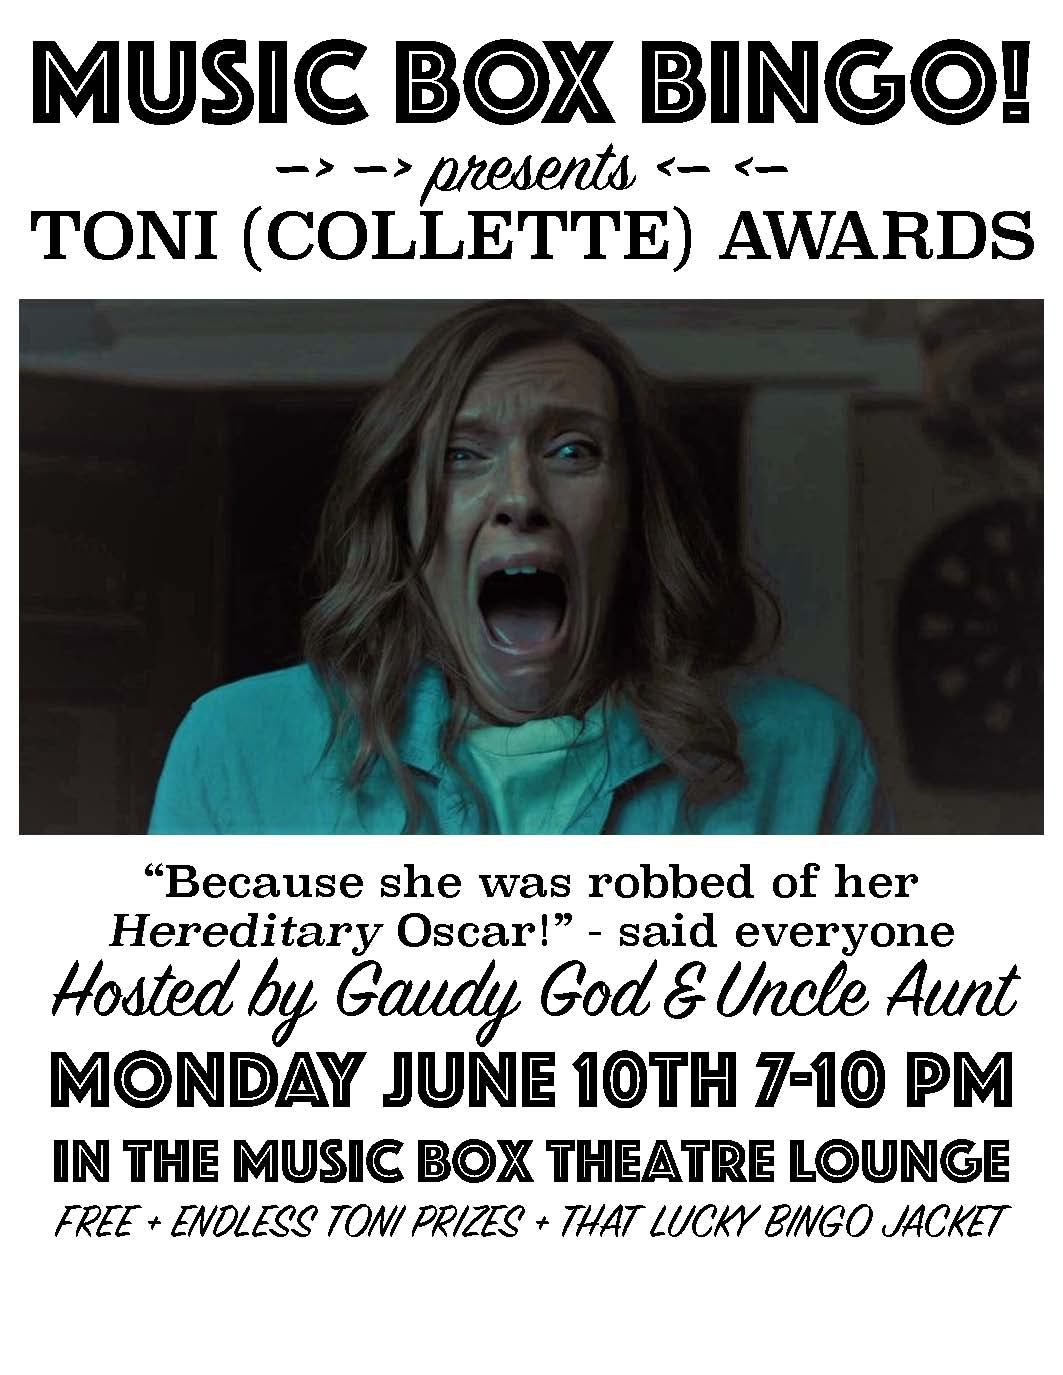 Toni Awards Poster Music Box Bingo